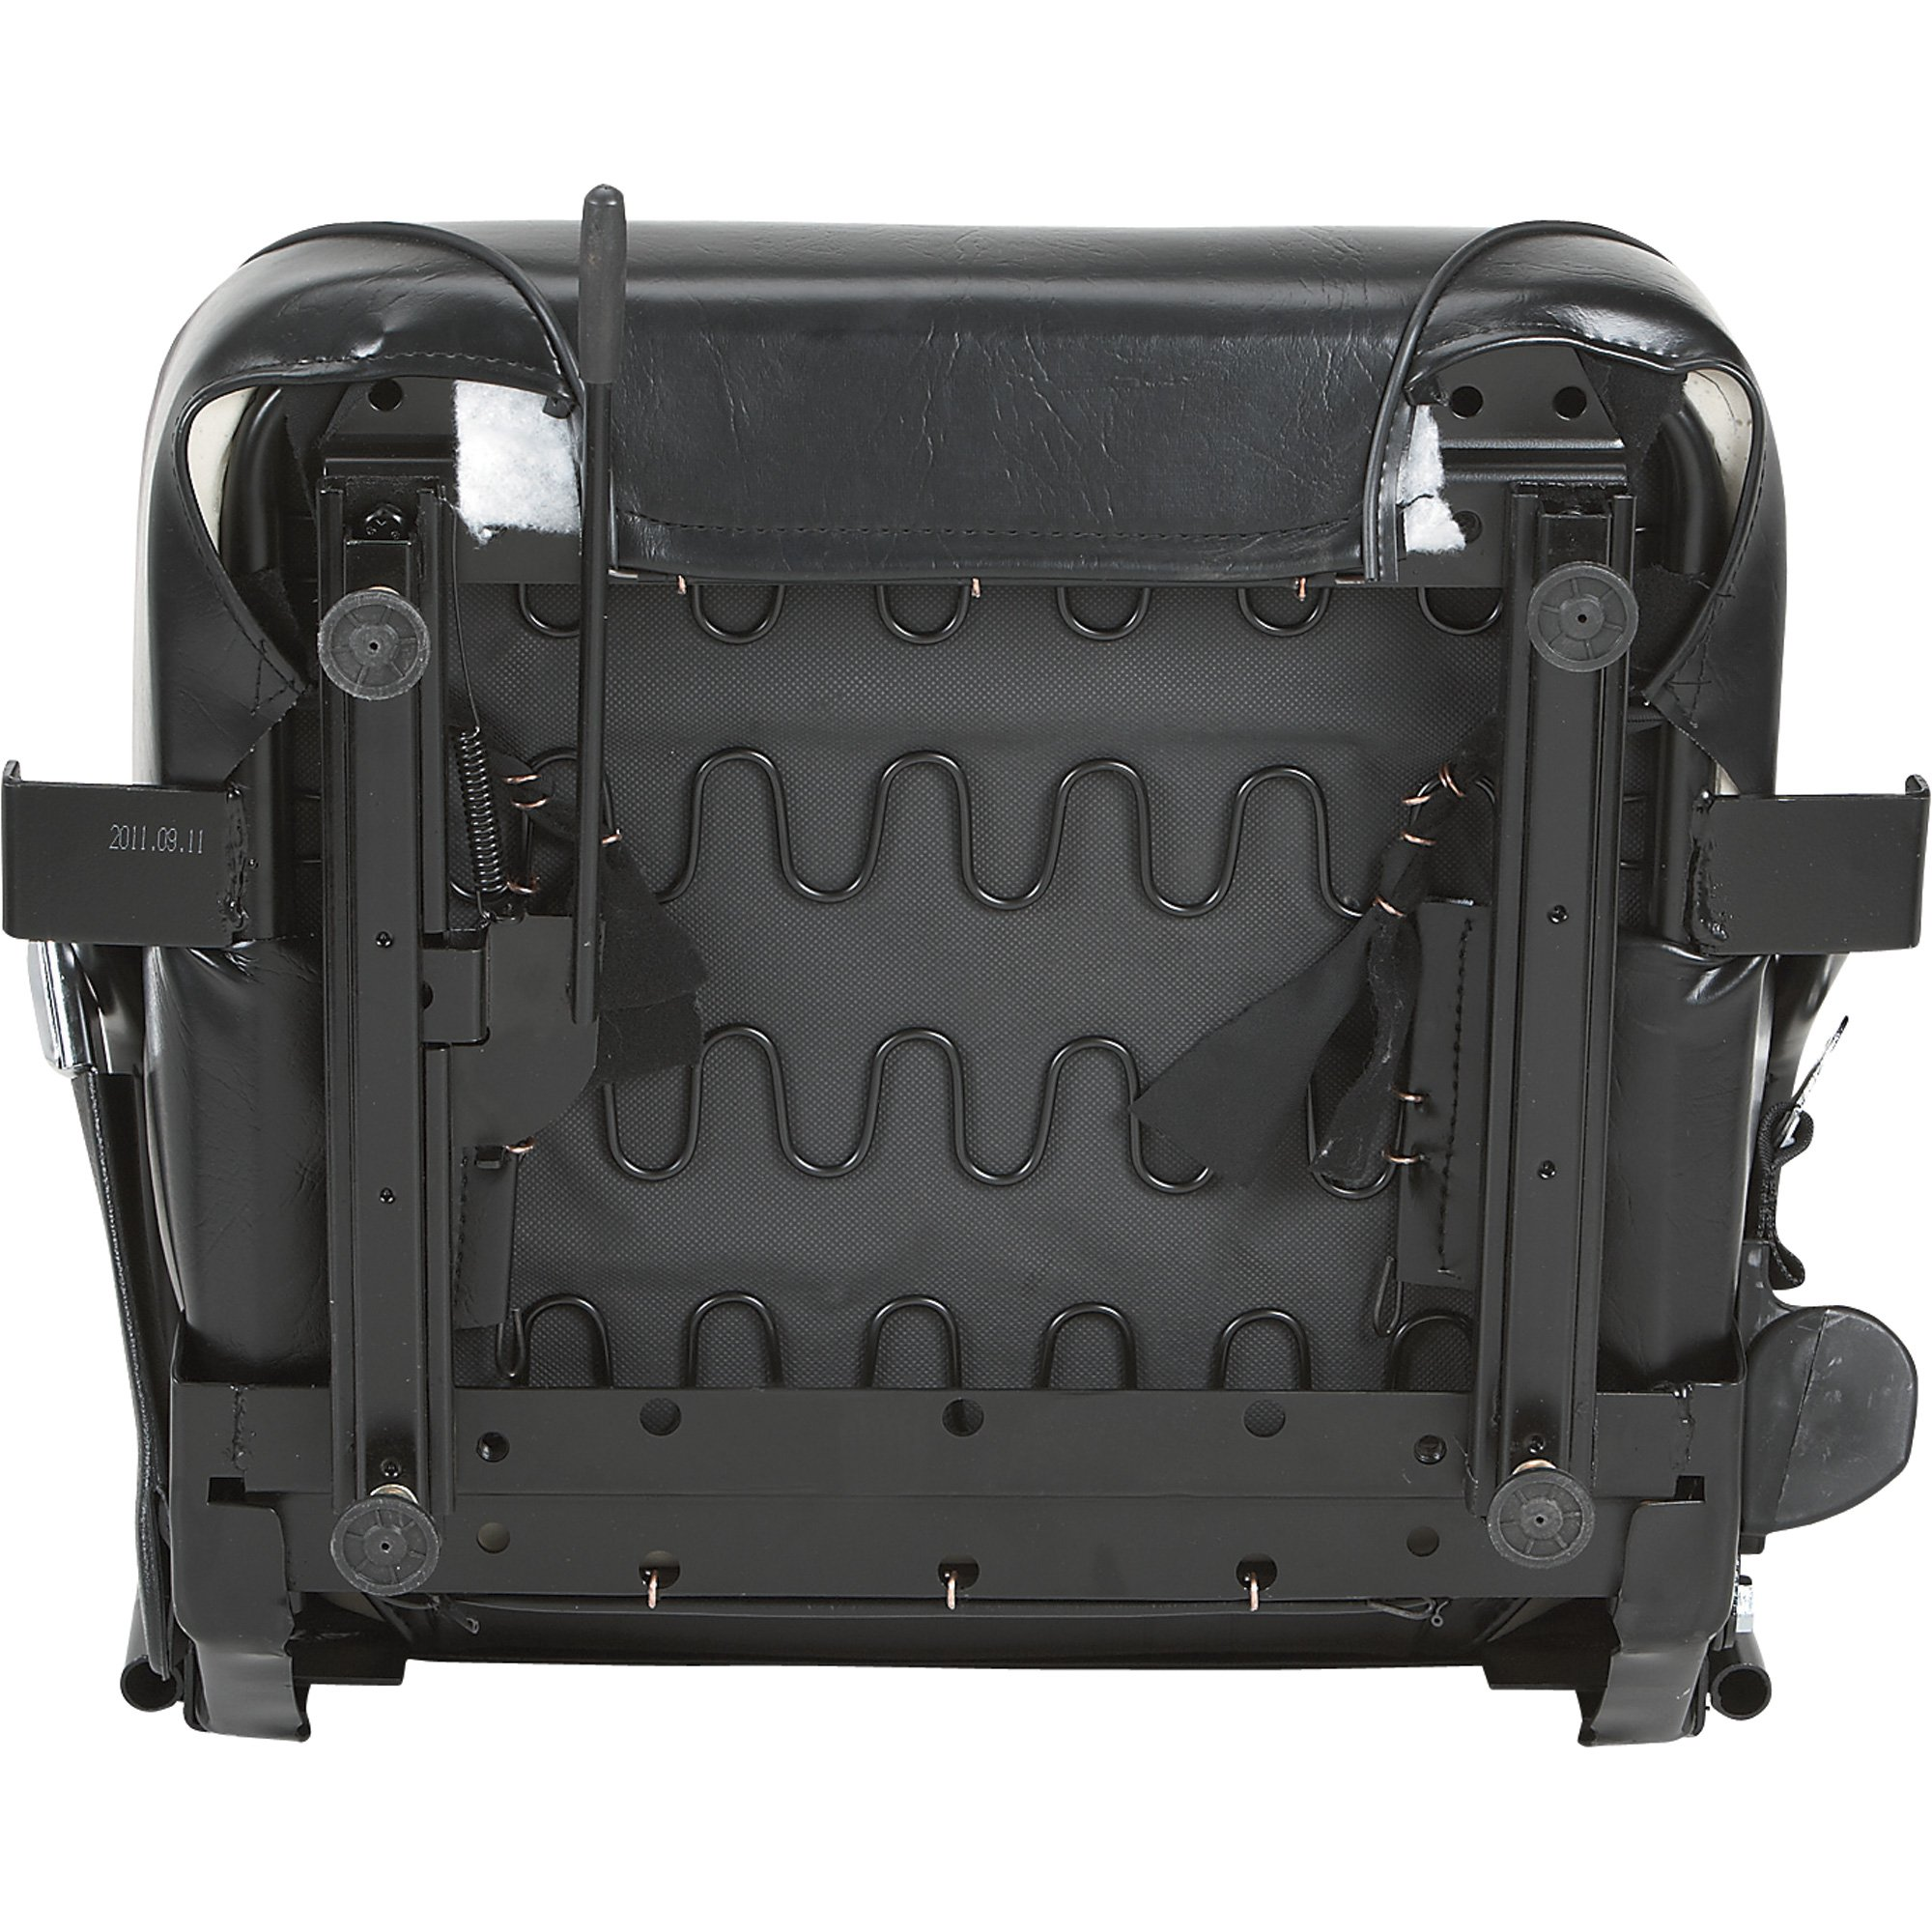 Wise Universal Forklift Seat Assembly, Model# WM1107